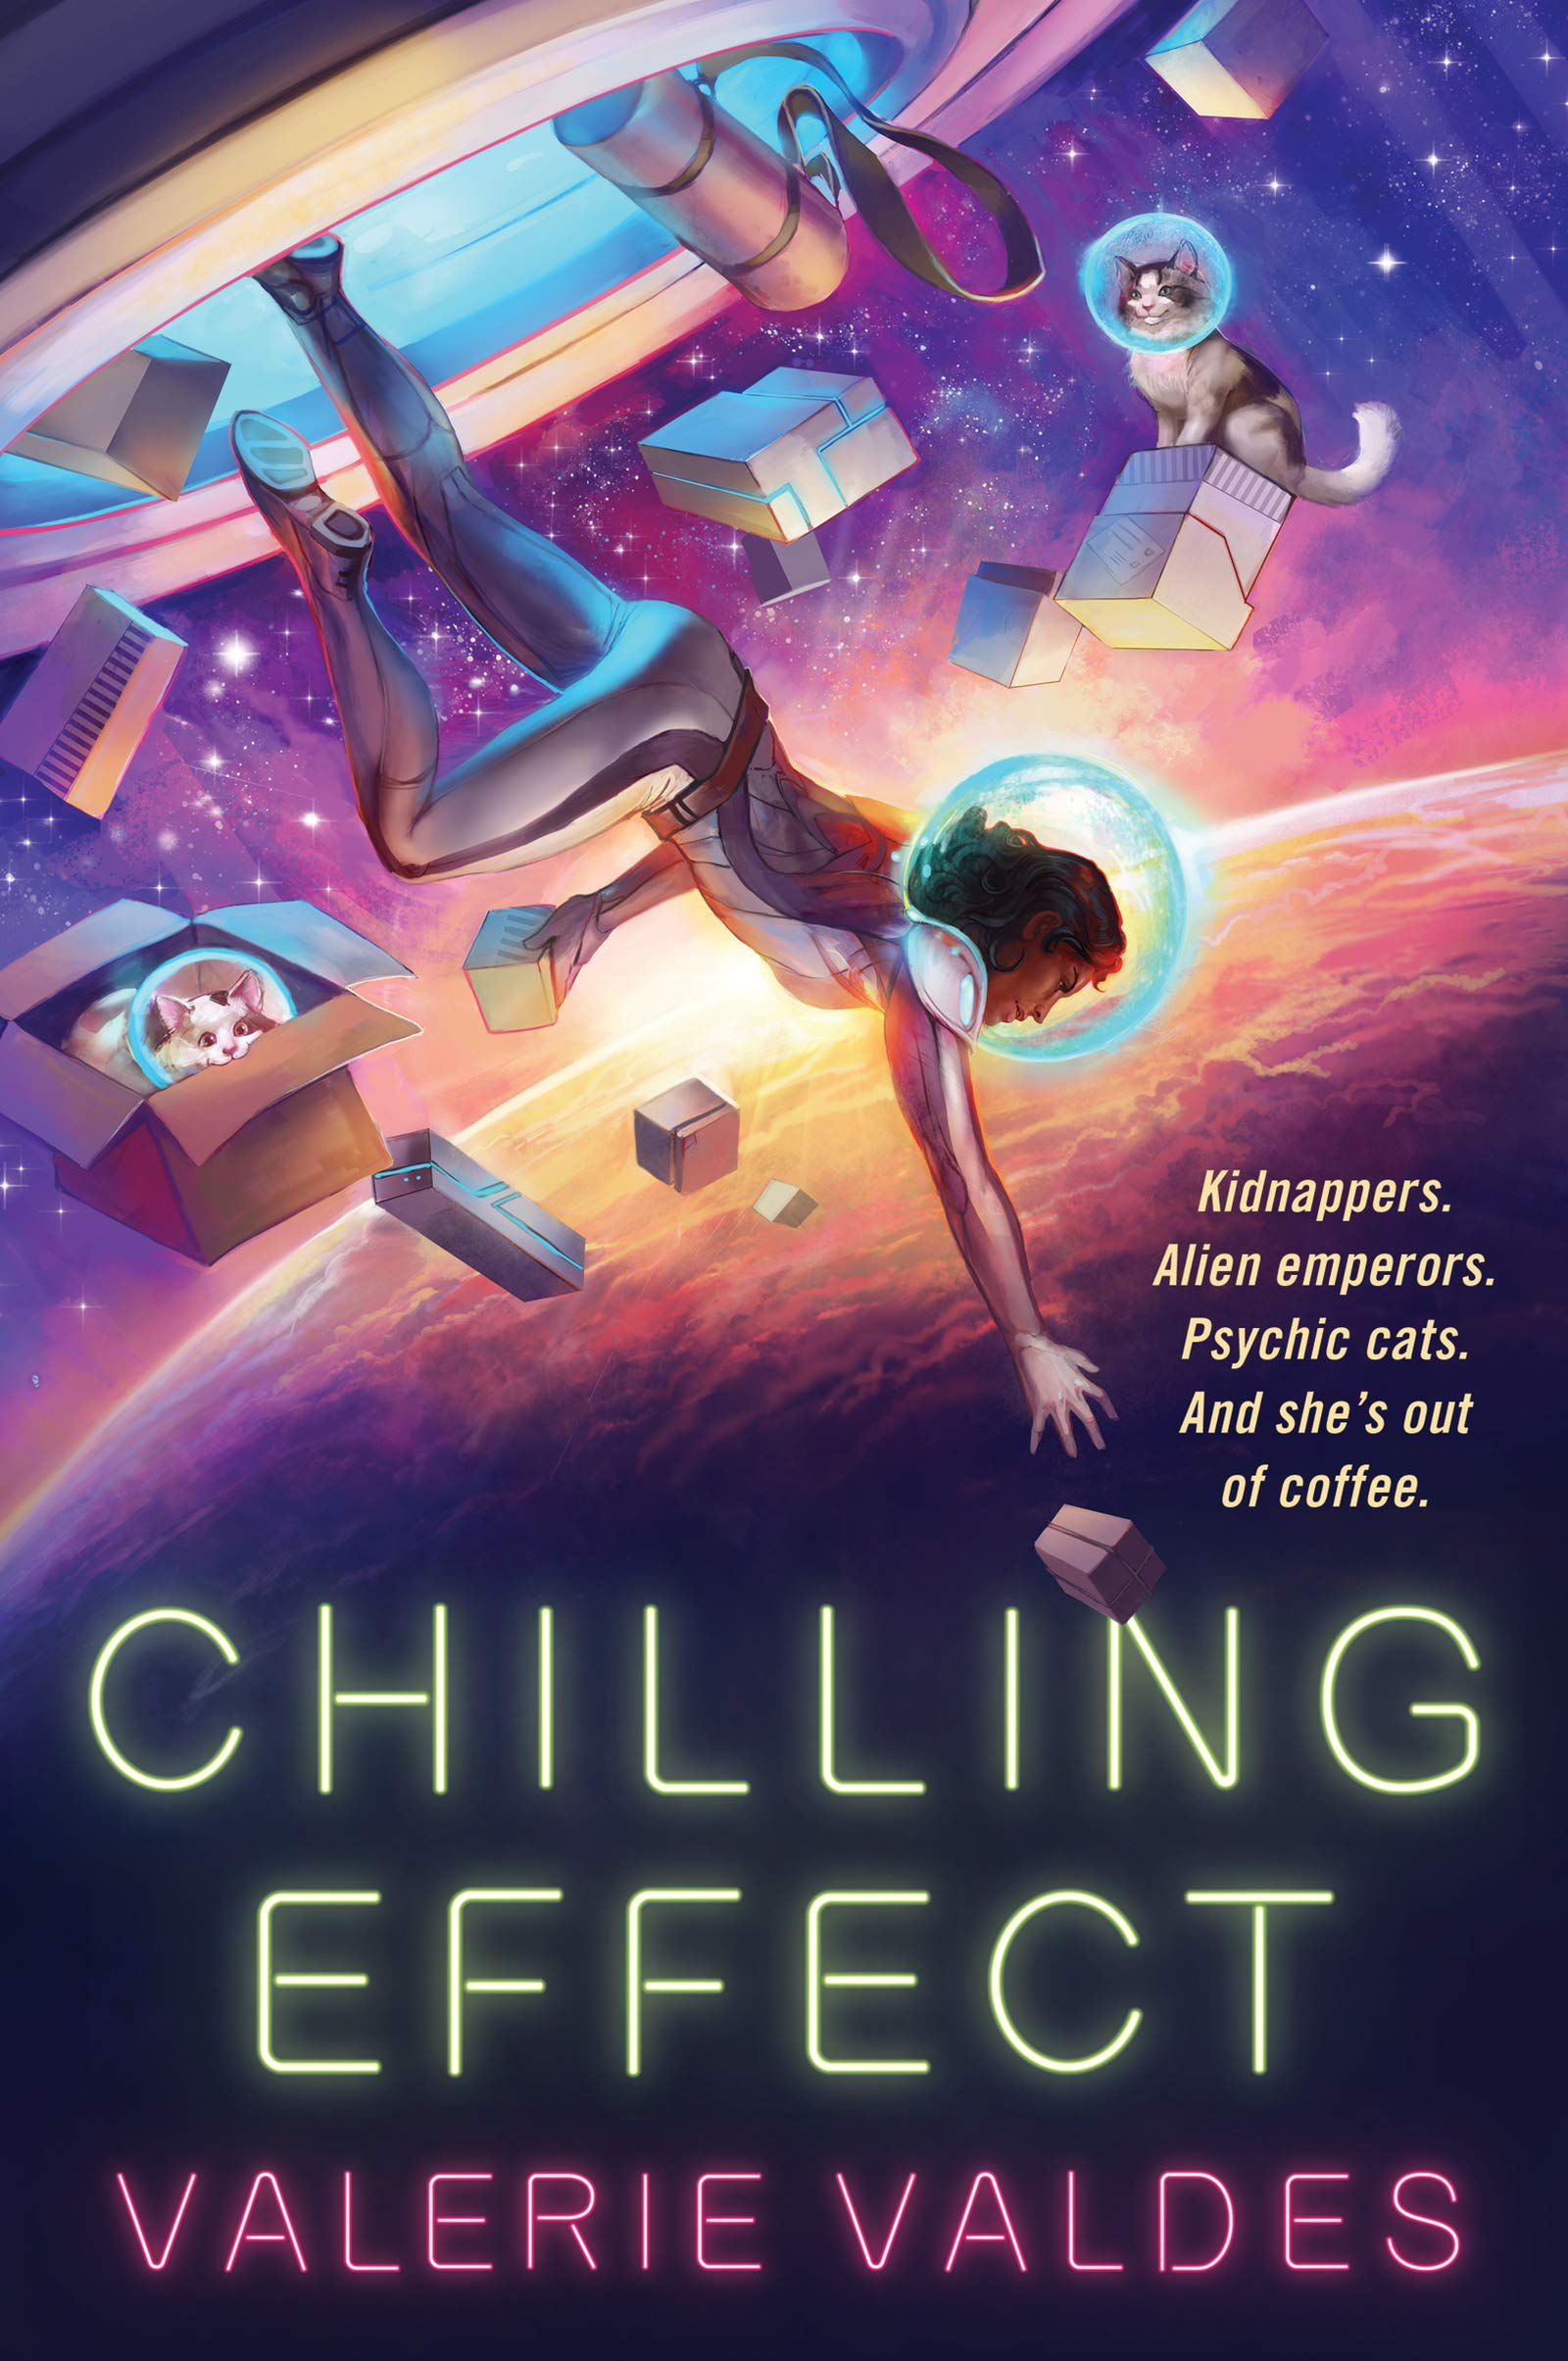 The cover of Chilling Effect, including two cats in space wearing spacesuit helmets